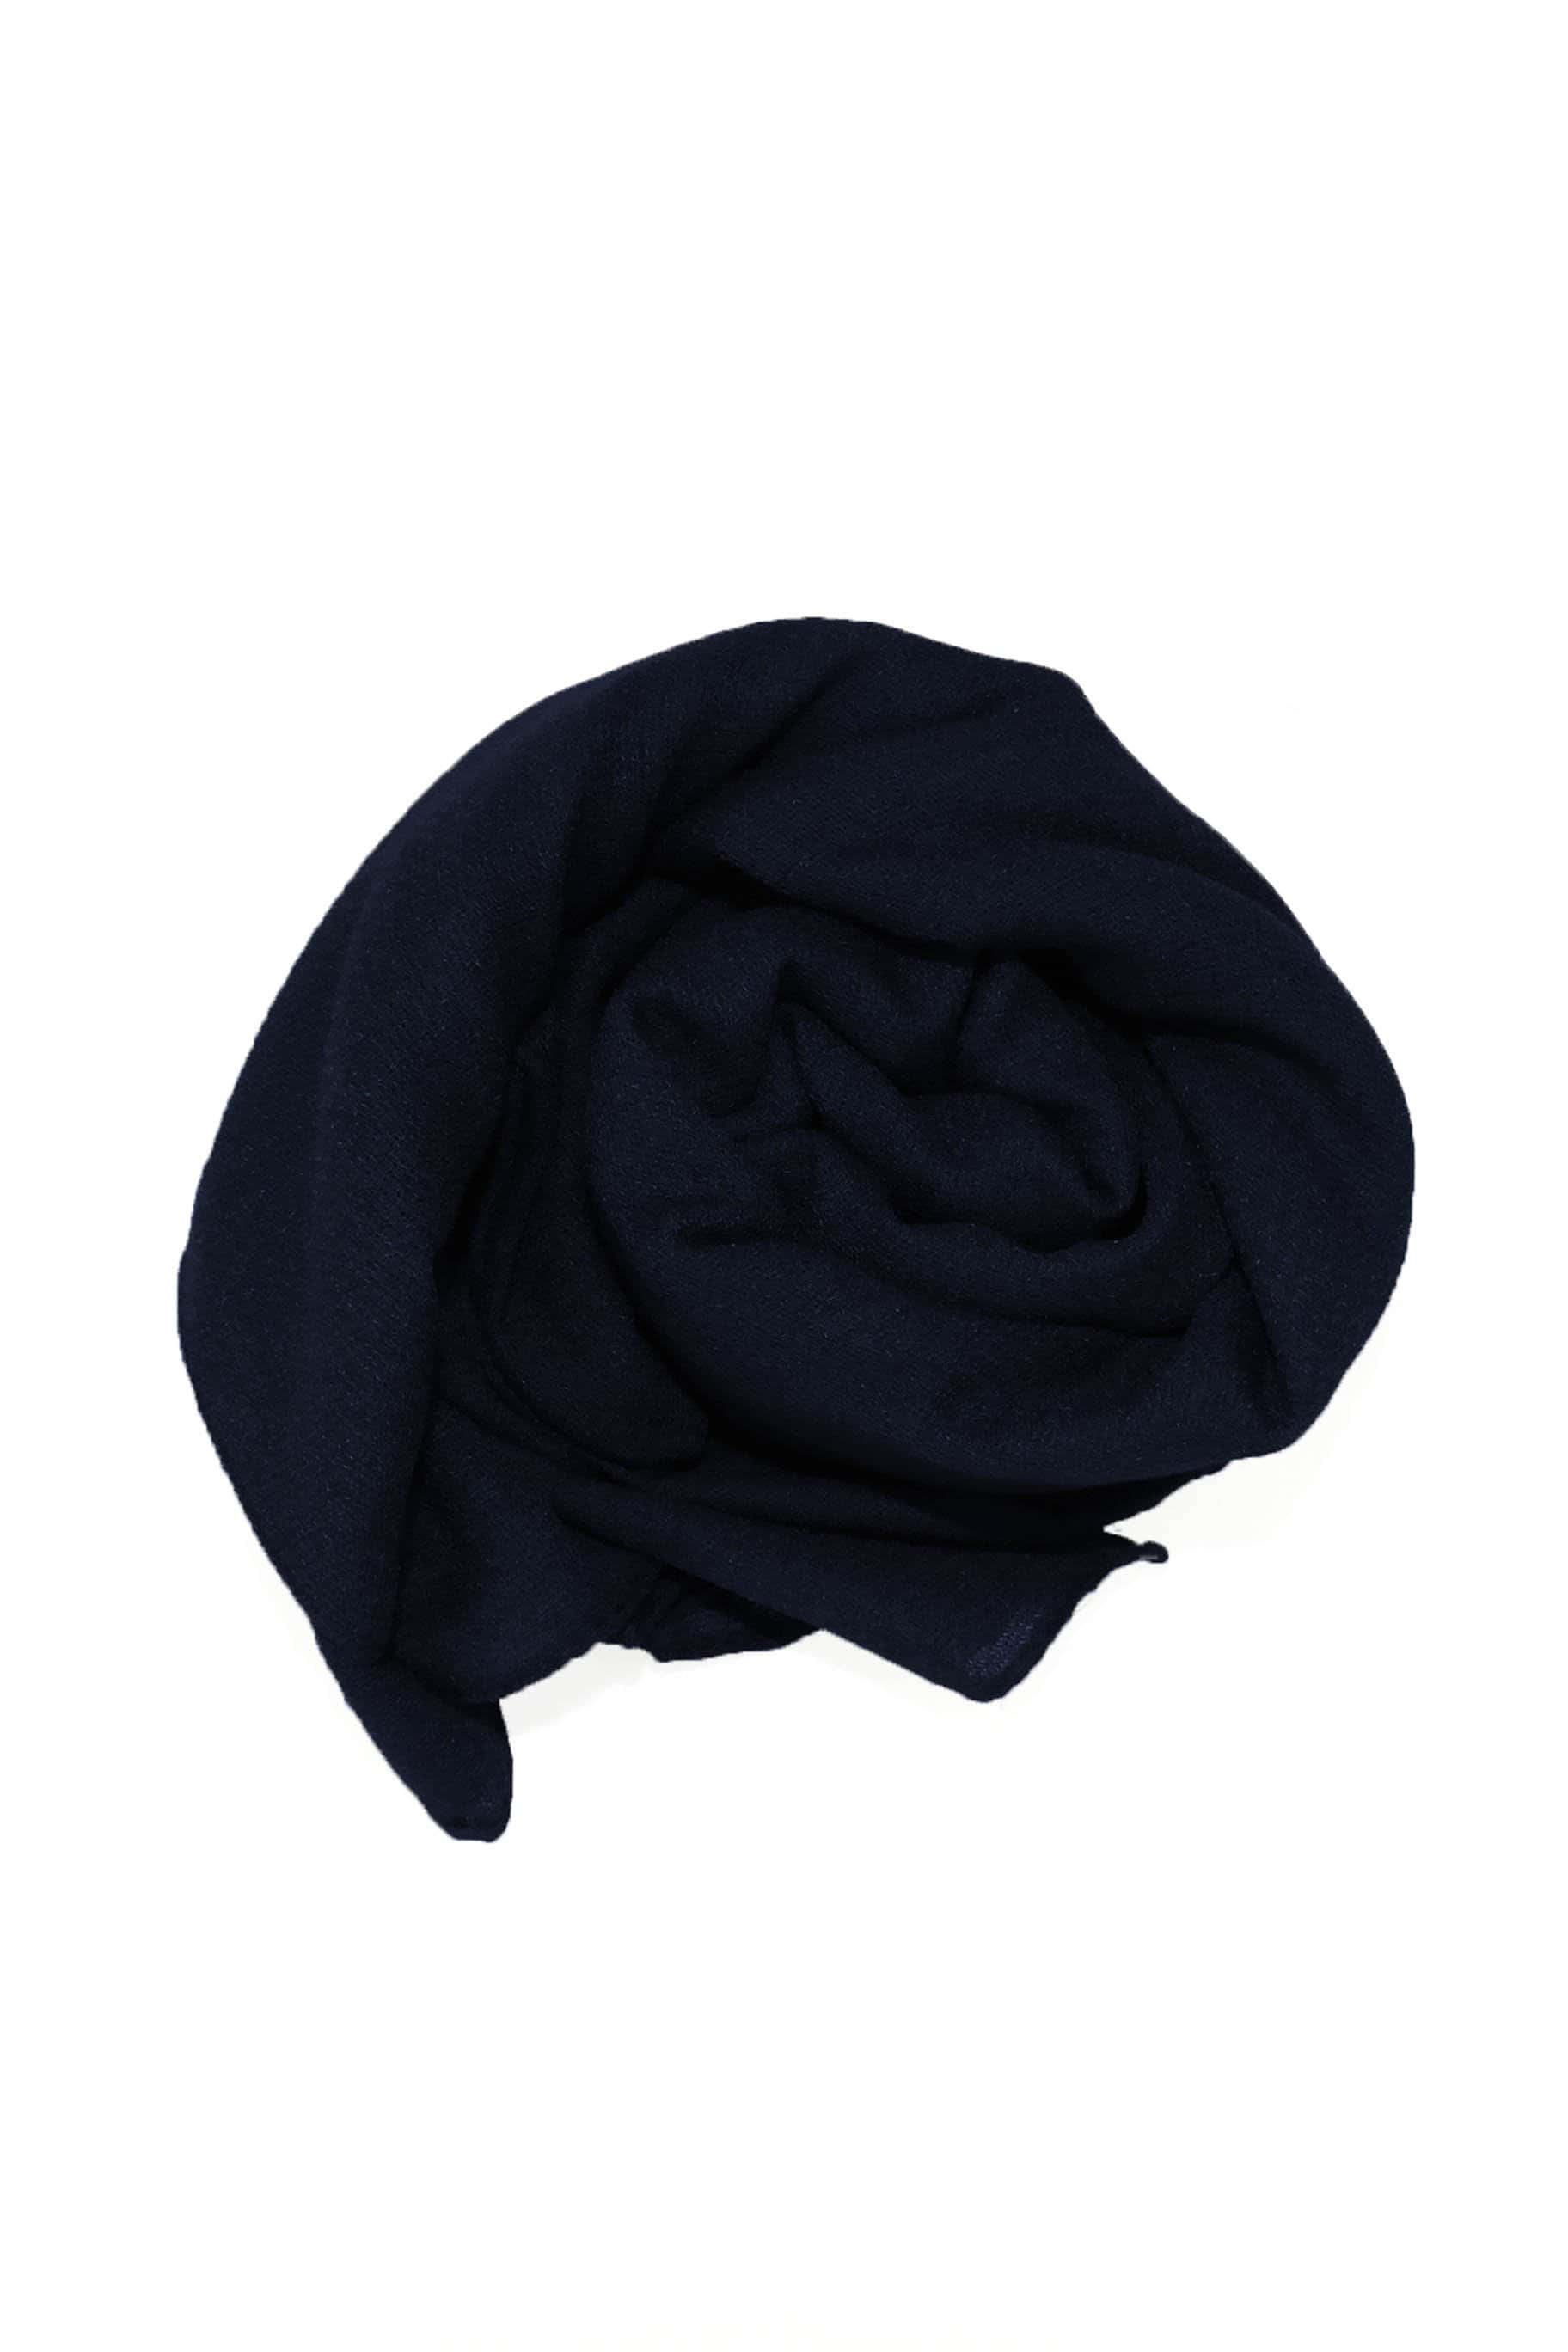 Bruised Blue Jute Cotton - Jute-Cotton Hijab - The Modest Look